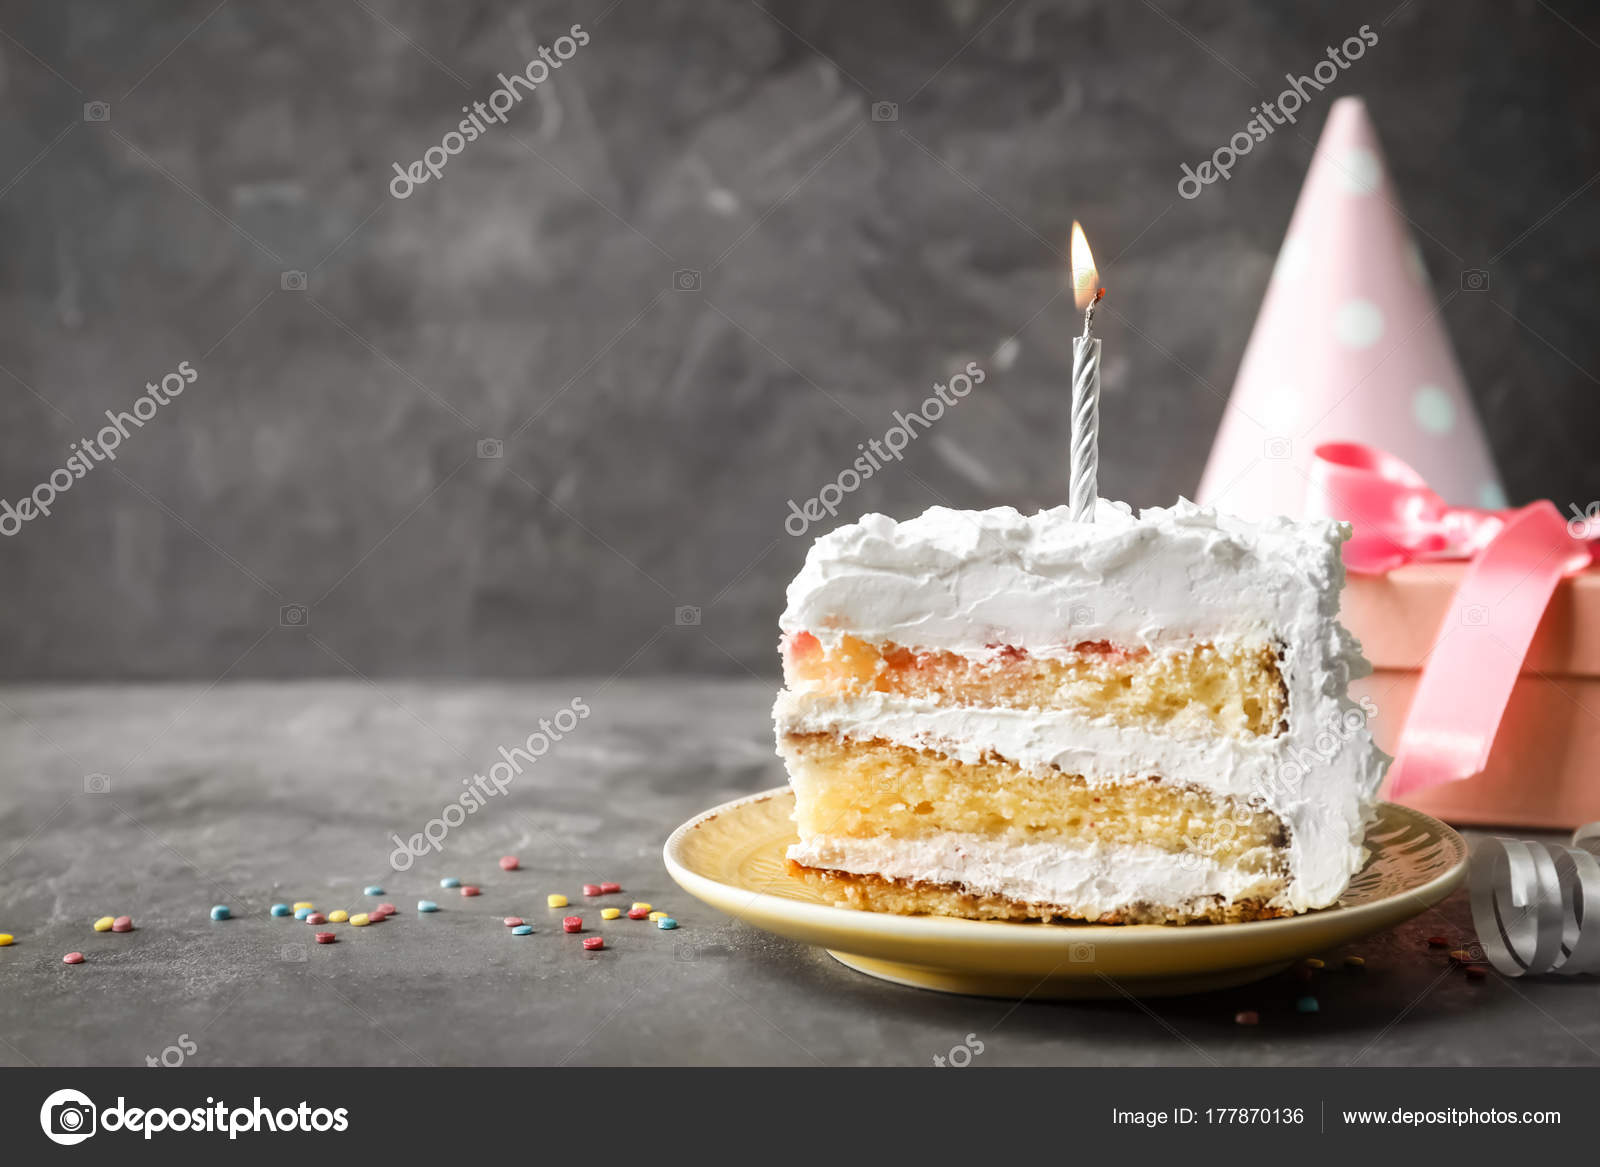 Astonishing Piece Of Birthday Cake With Candle On Table Stock Photo Personalised Birthday Cards Petedlily Jamesorg